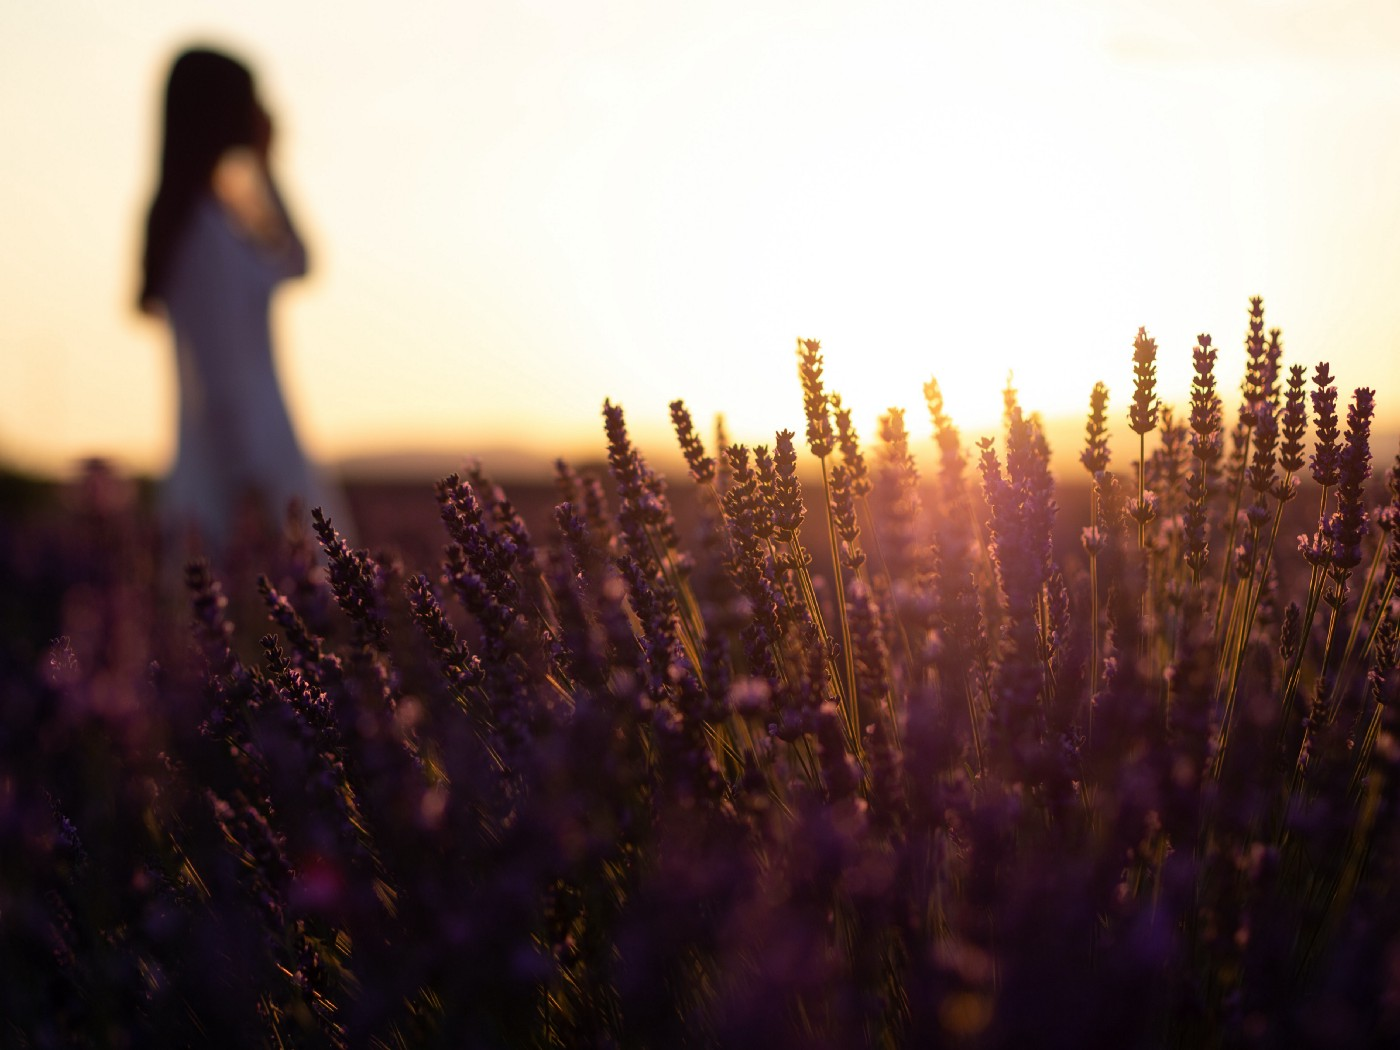 Woman at dawn in a wheat field with the sun coming up